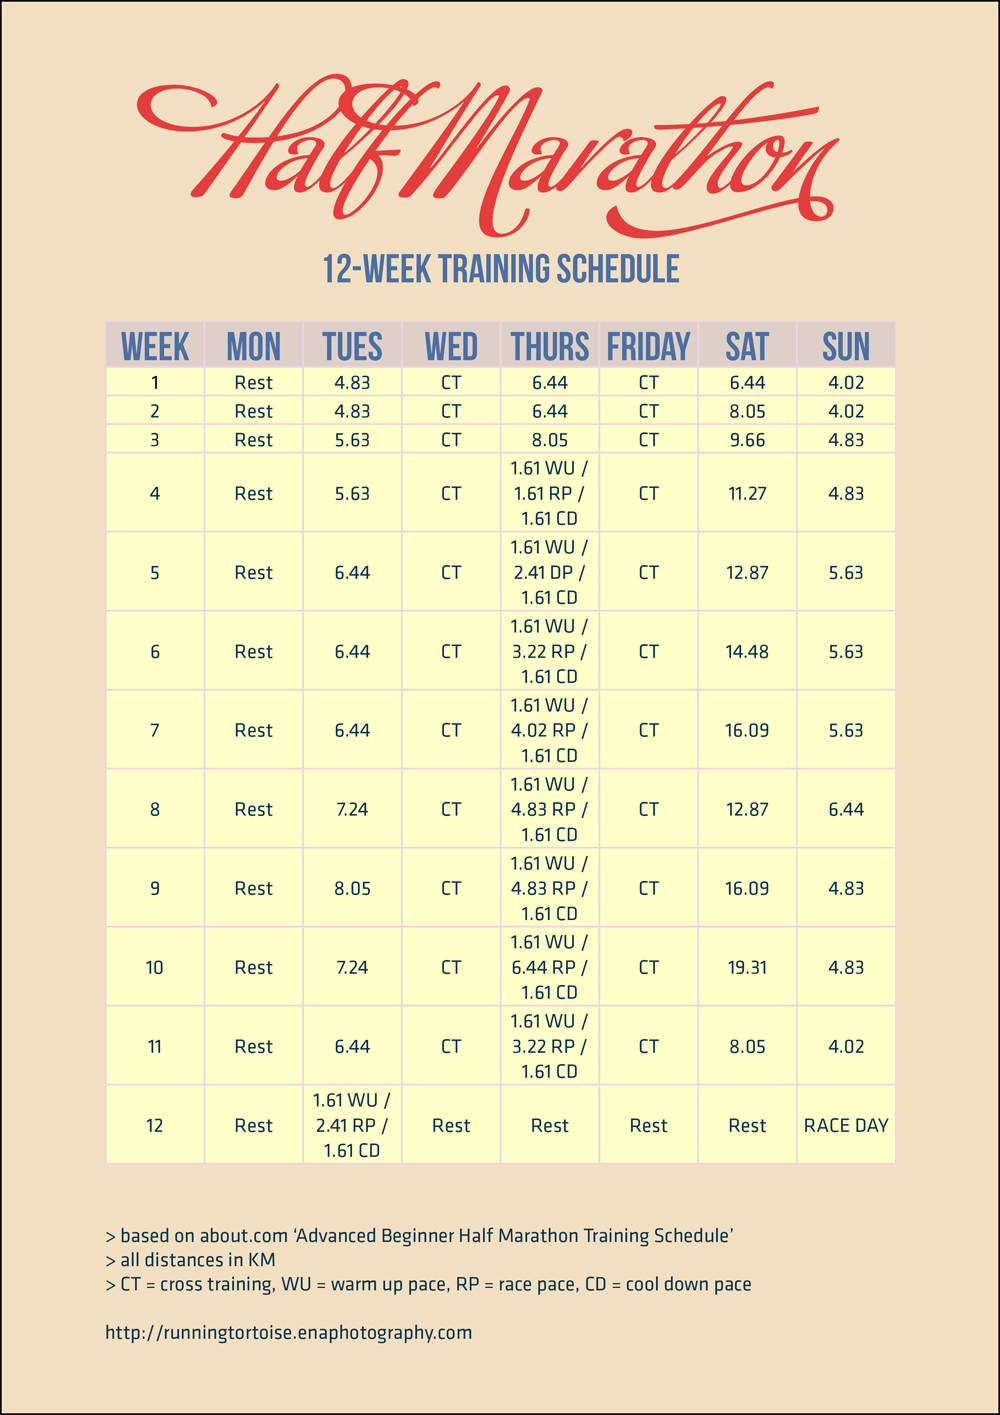 12-Week Half-Marathon Training Schedule | Running Tortoise